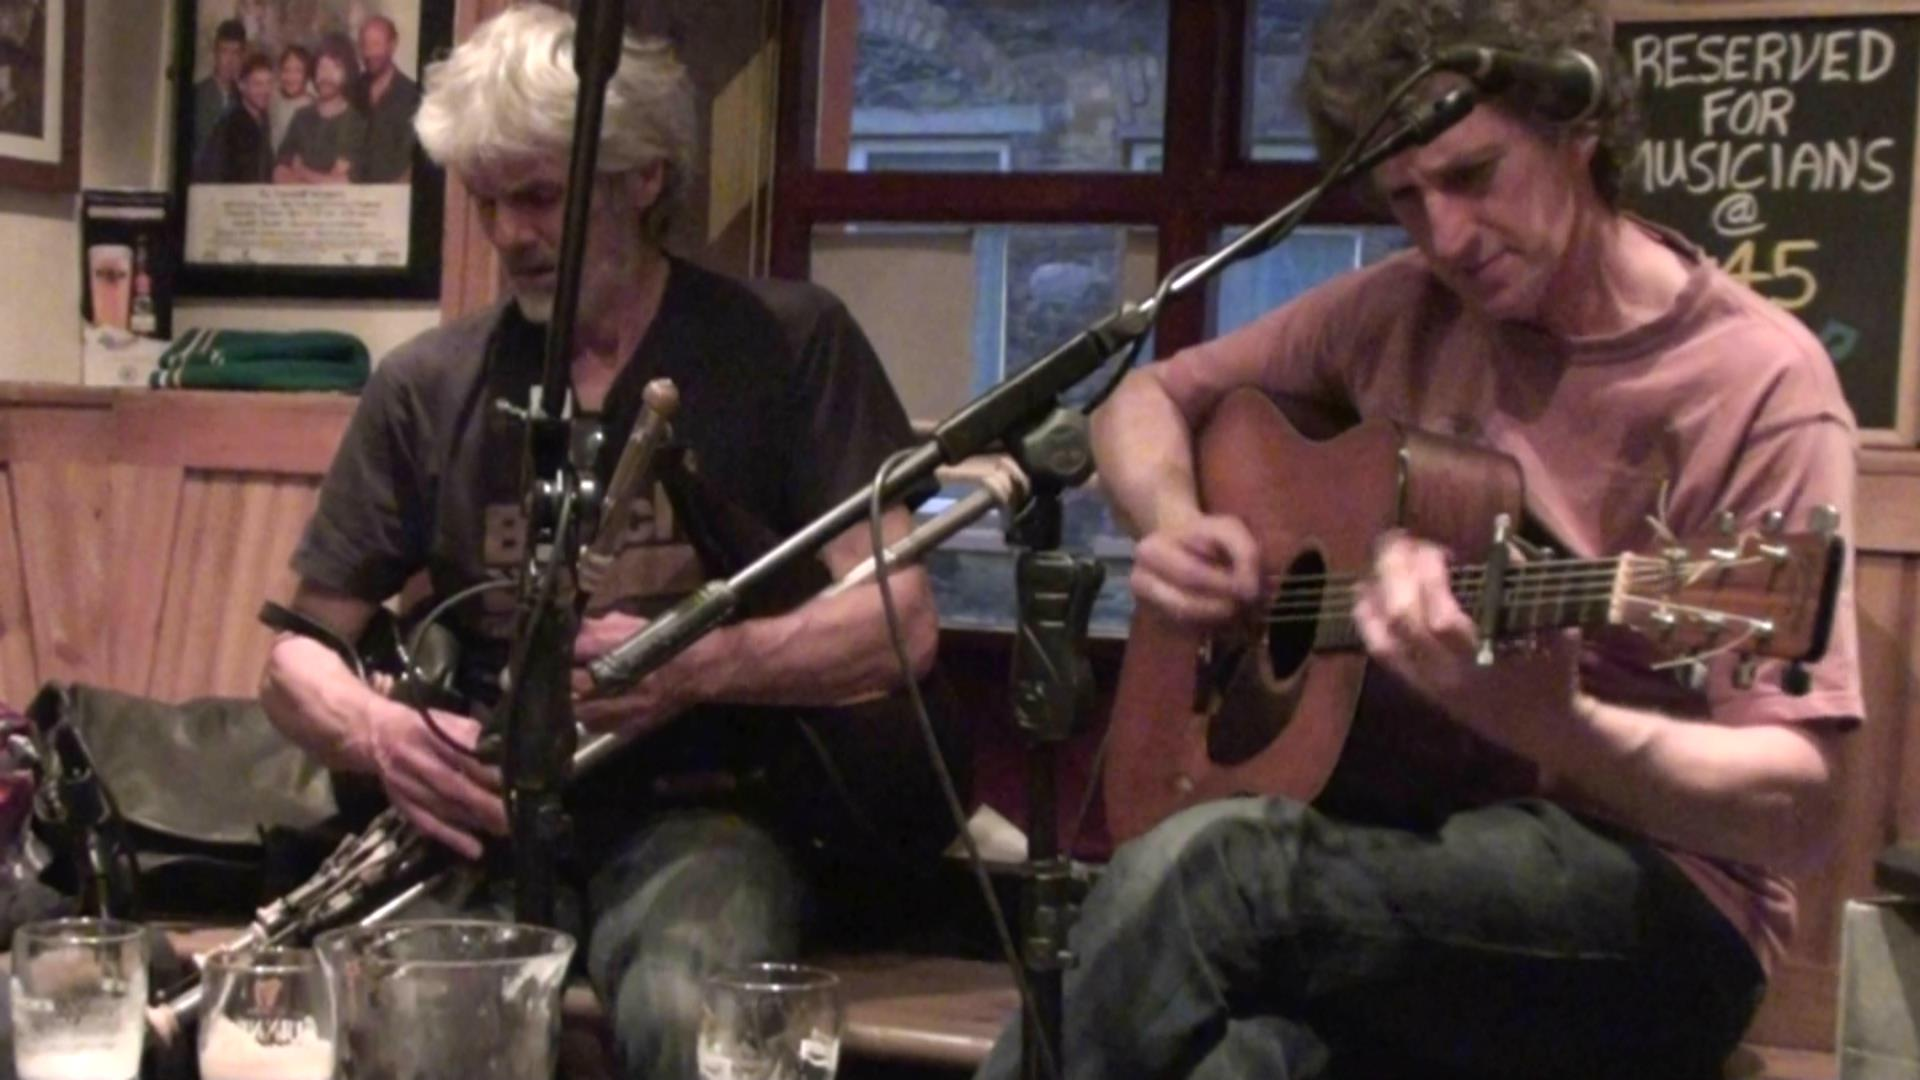 No shortage of live music in Dingle!